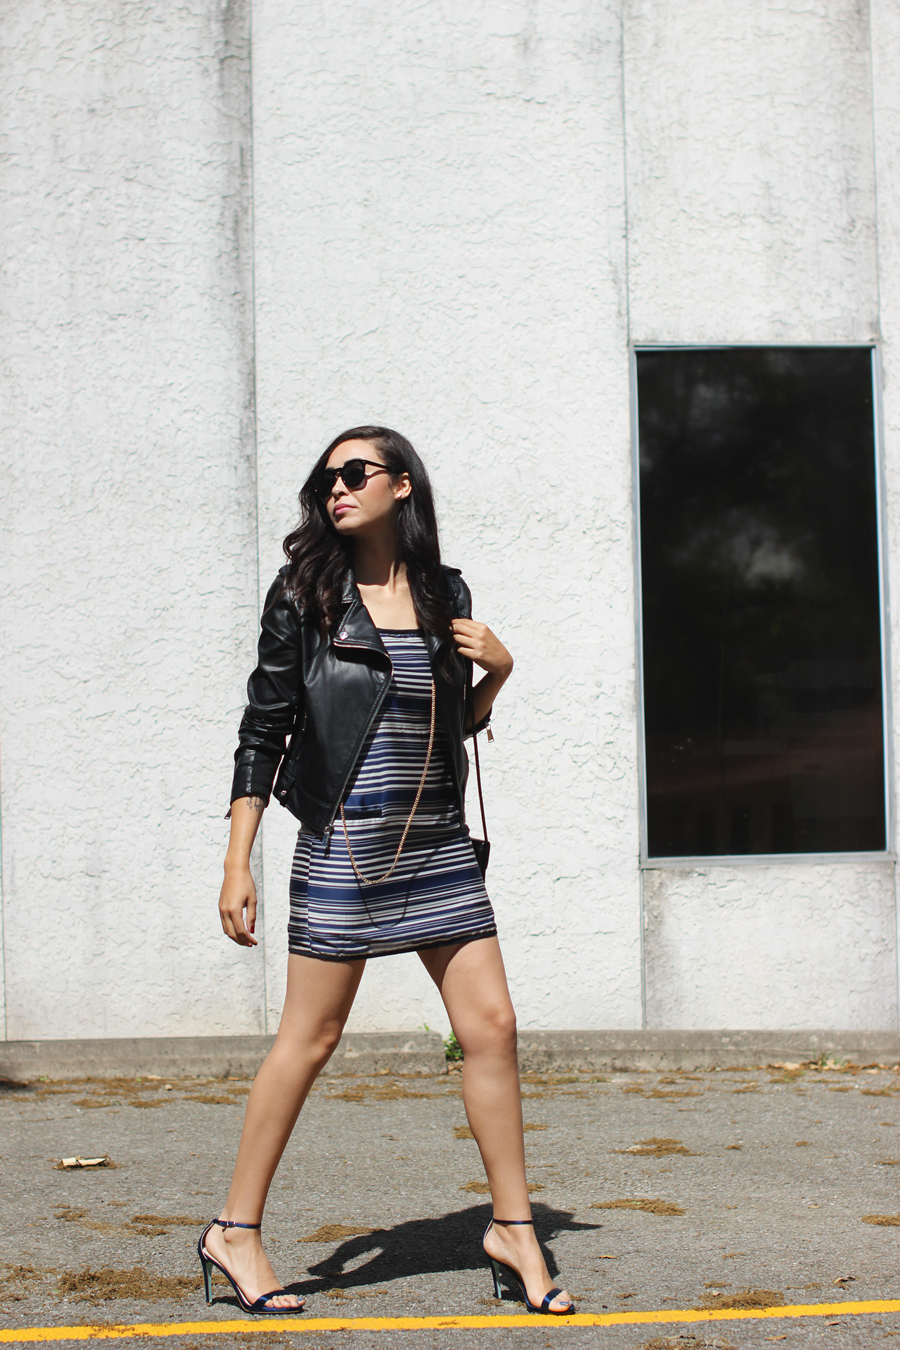 FTT-STRIPED-DRESS-LEATHER-JACKET-BCBG-AUSTIN-BLOGGER-10